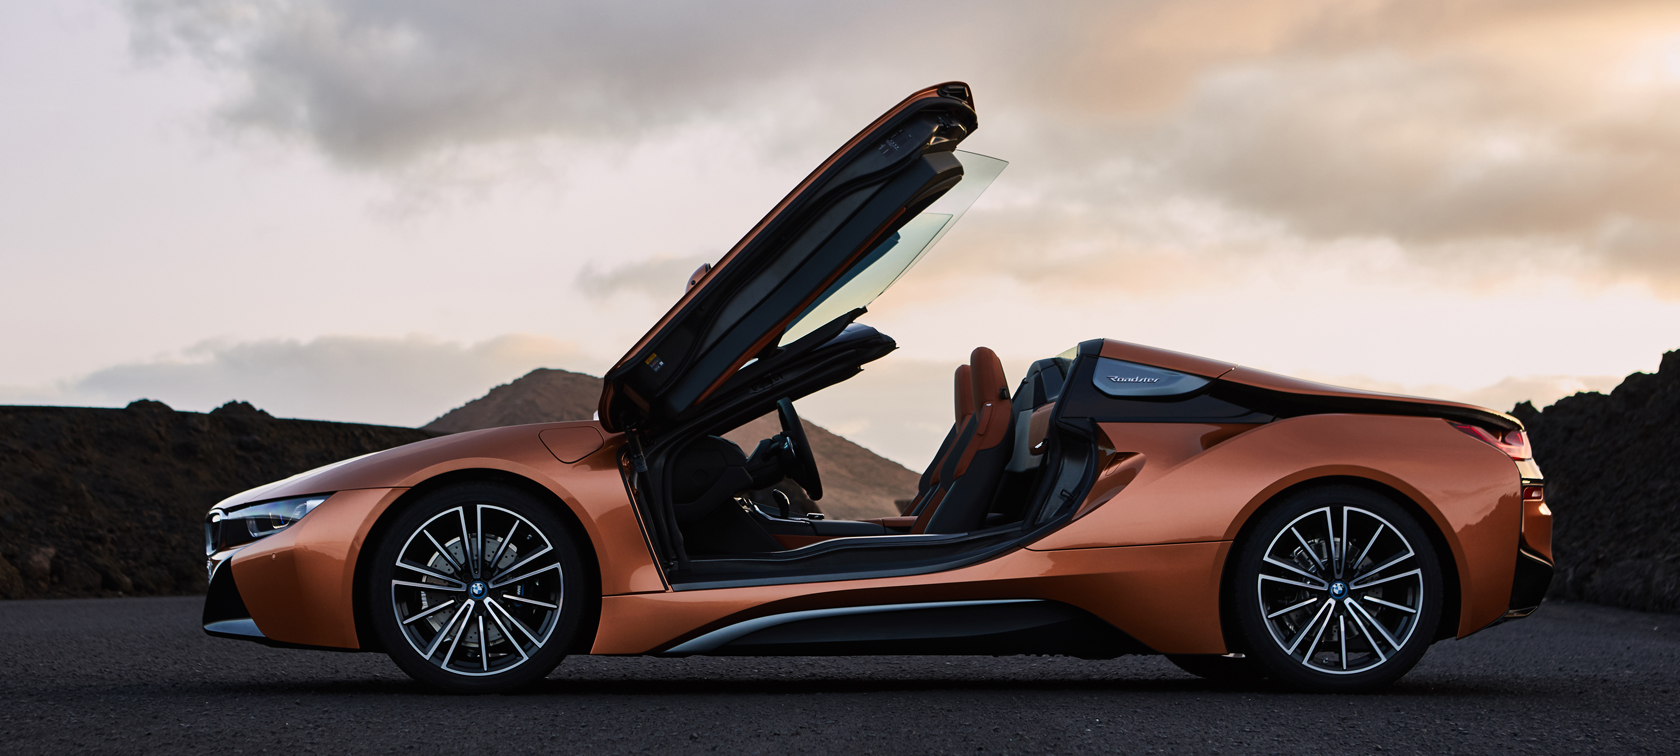 THE NEW BMW i8 Roadster. Clean wind in your hair.